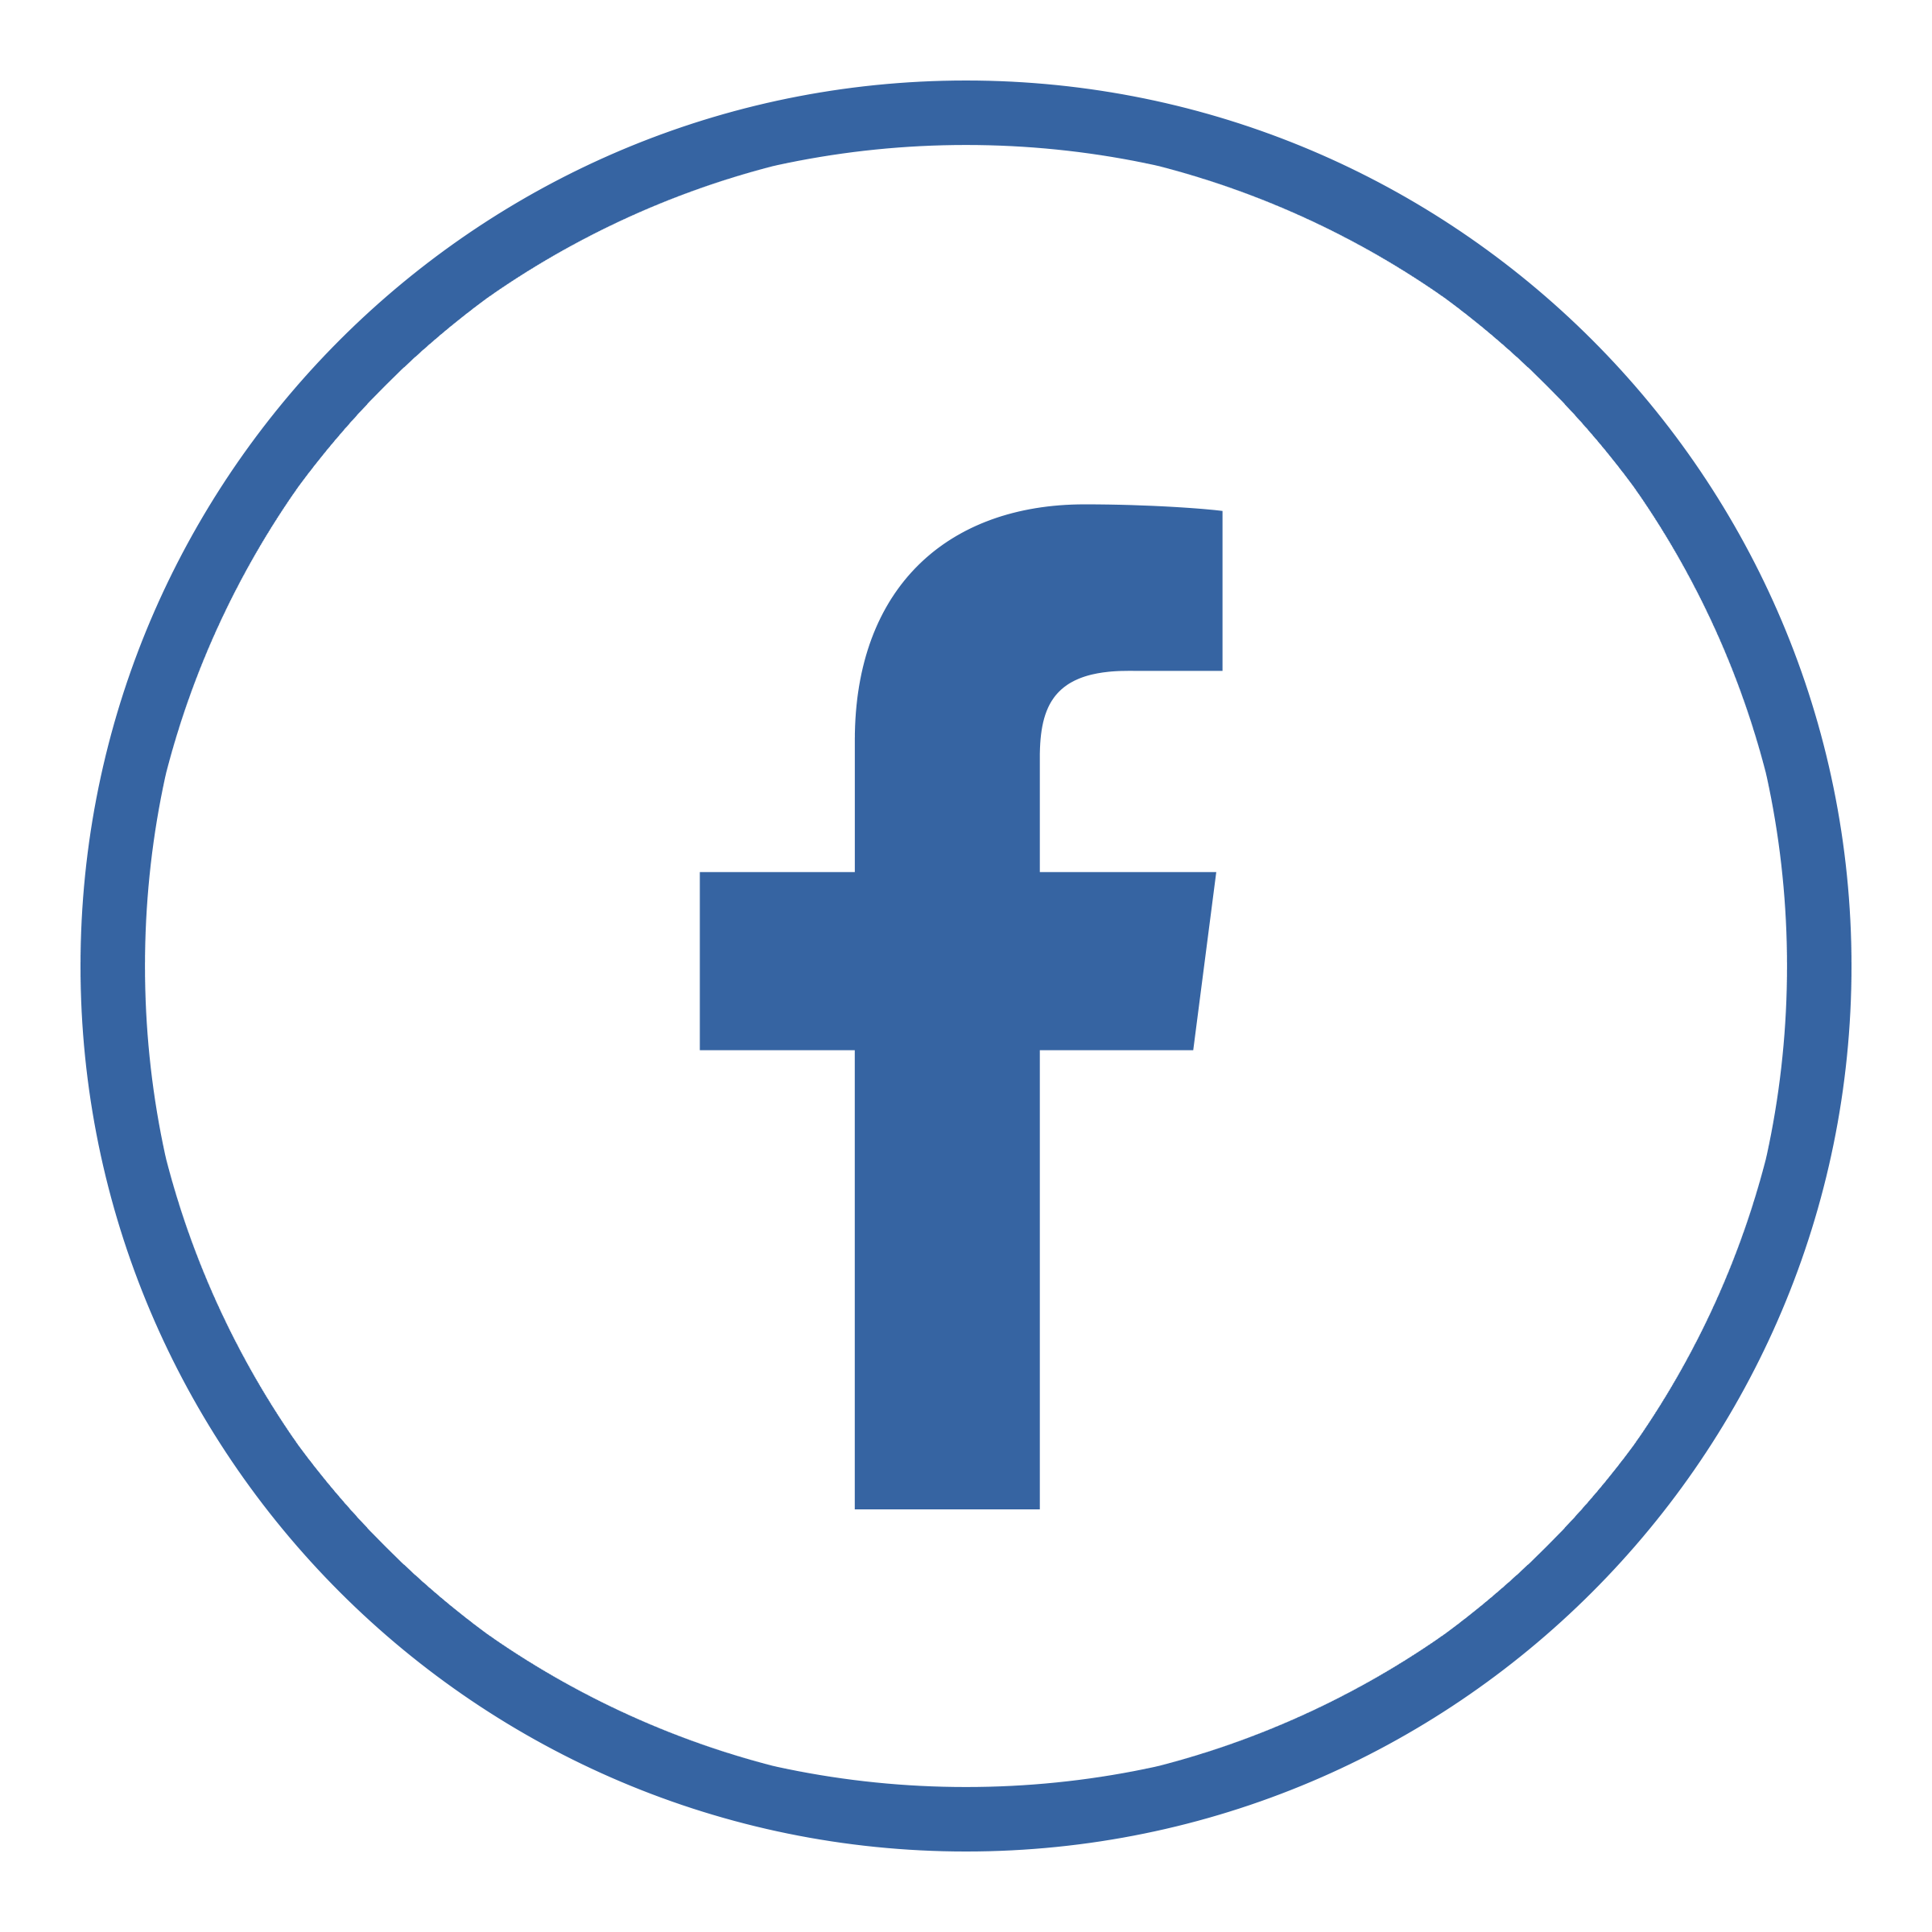 Facebook clipart logo google. Circle png pictures free